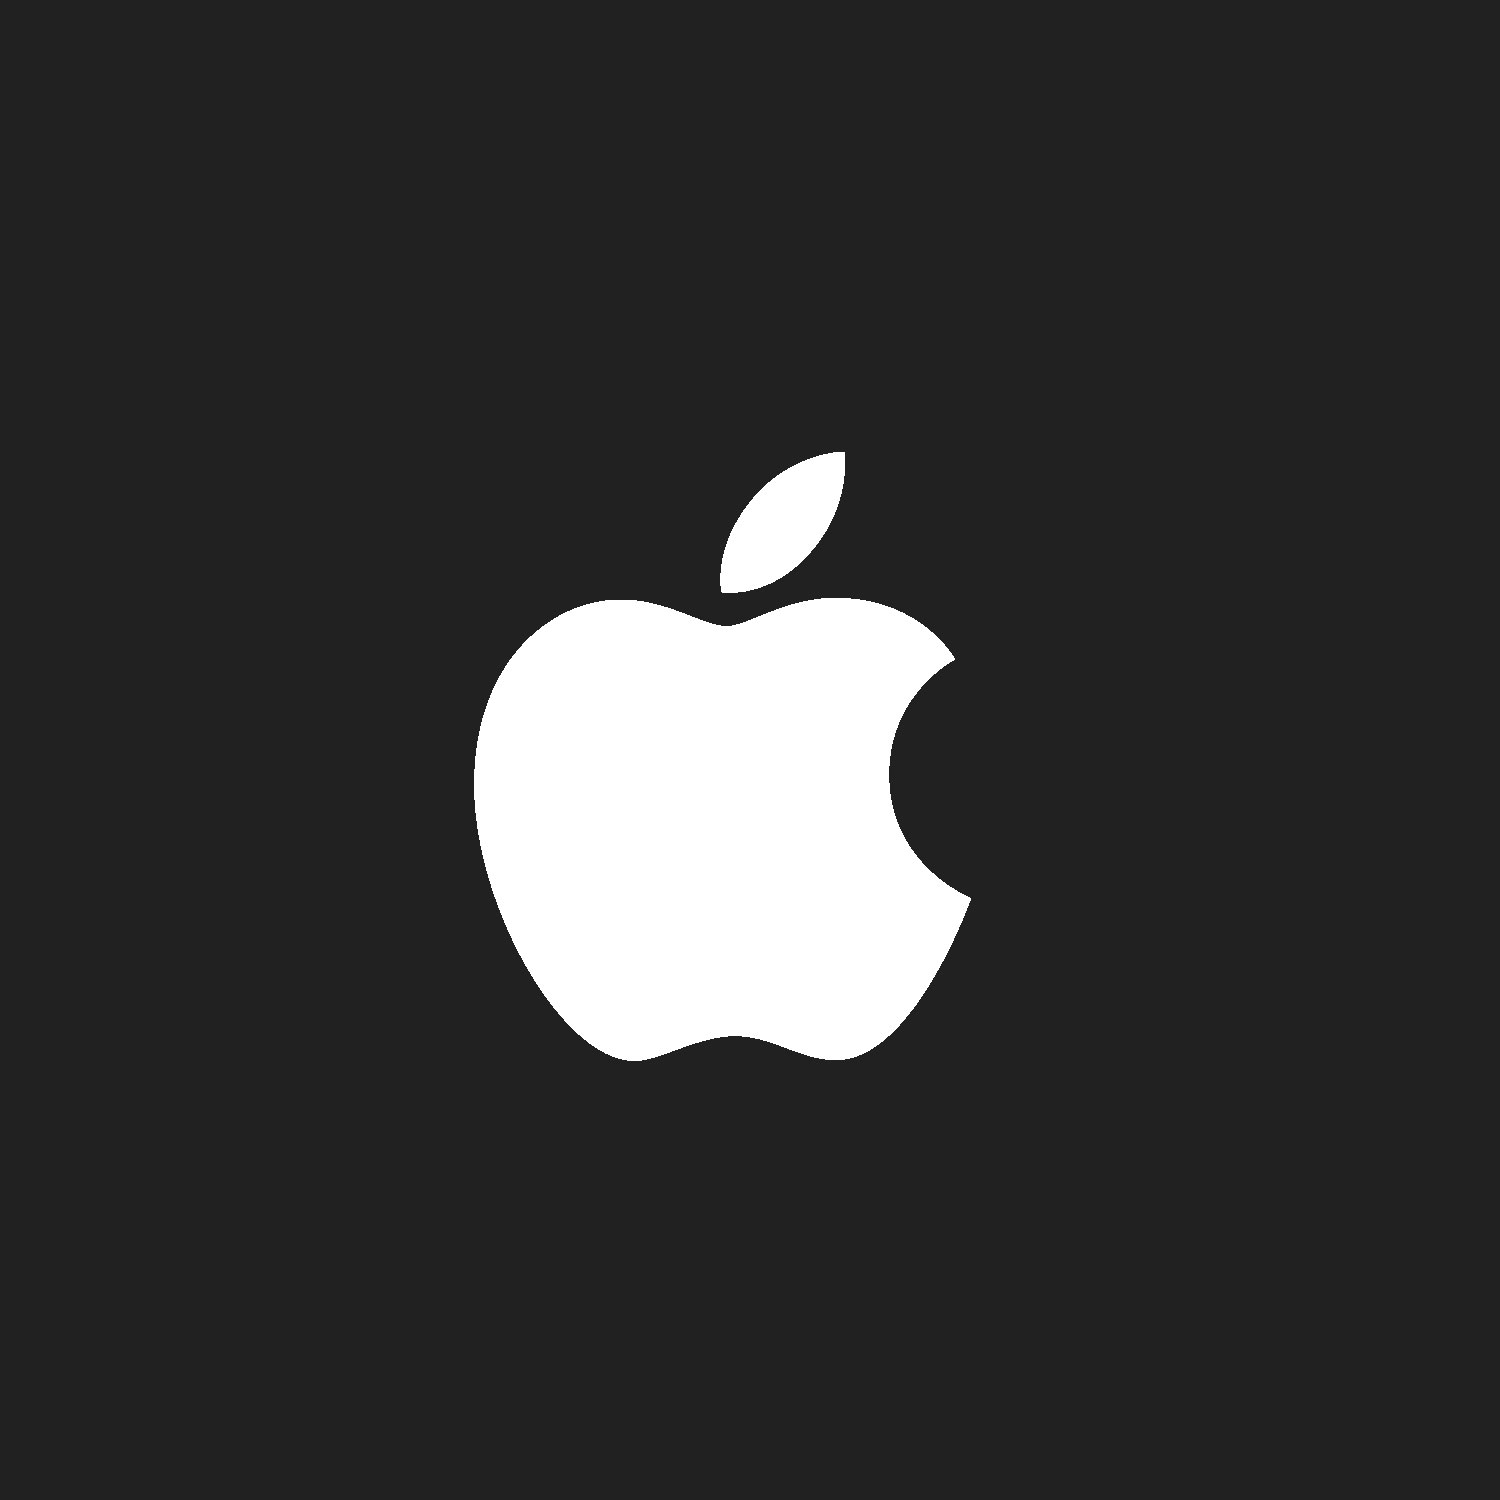 apple-Freelance-Researcher